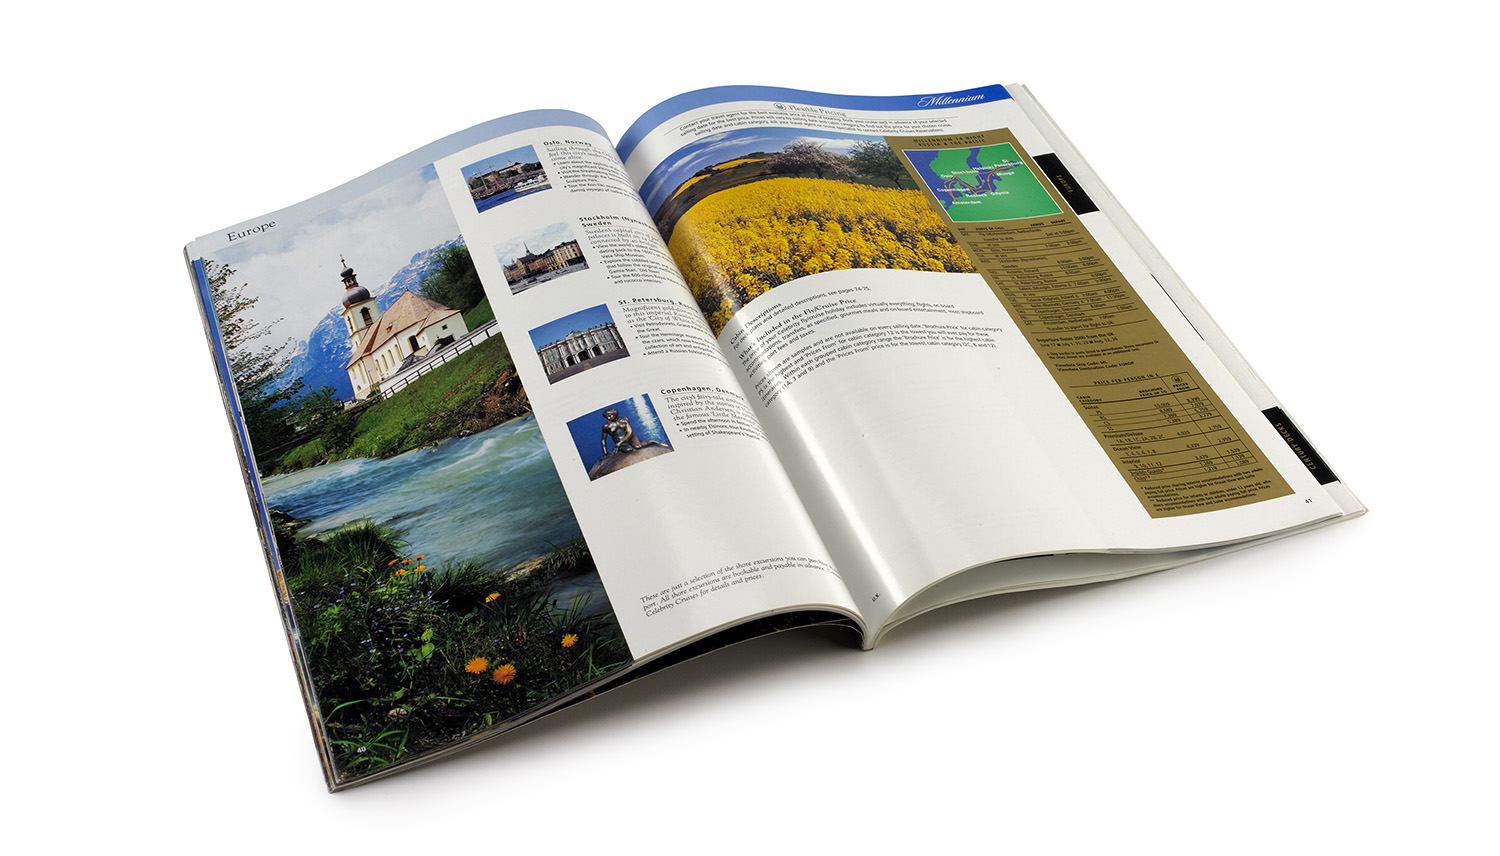 The destination section of the International Fleet Catalog gave a description of the area, excursions and map/itinerary.